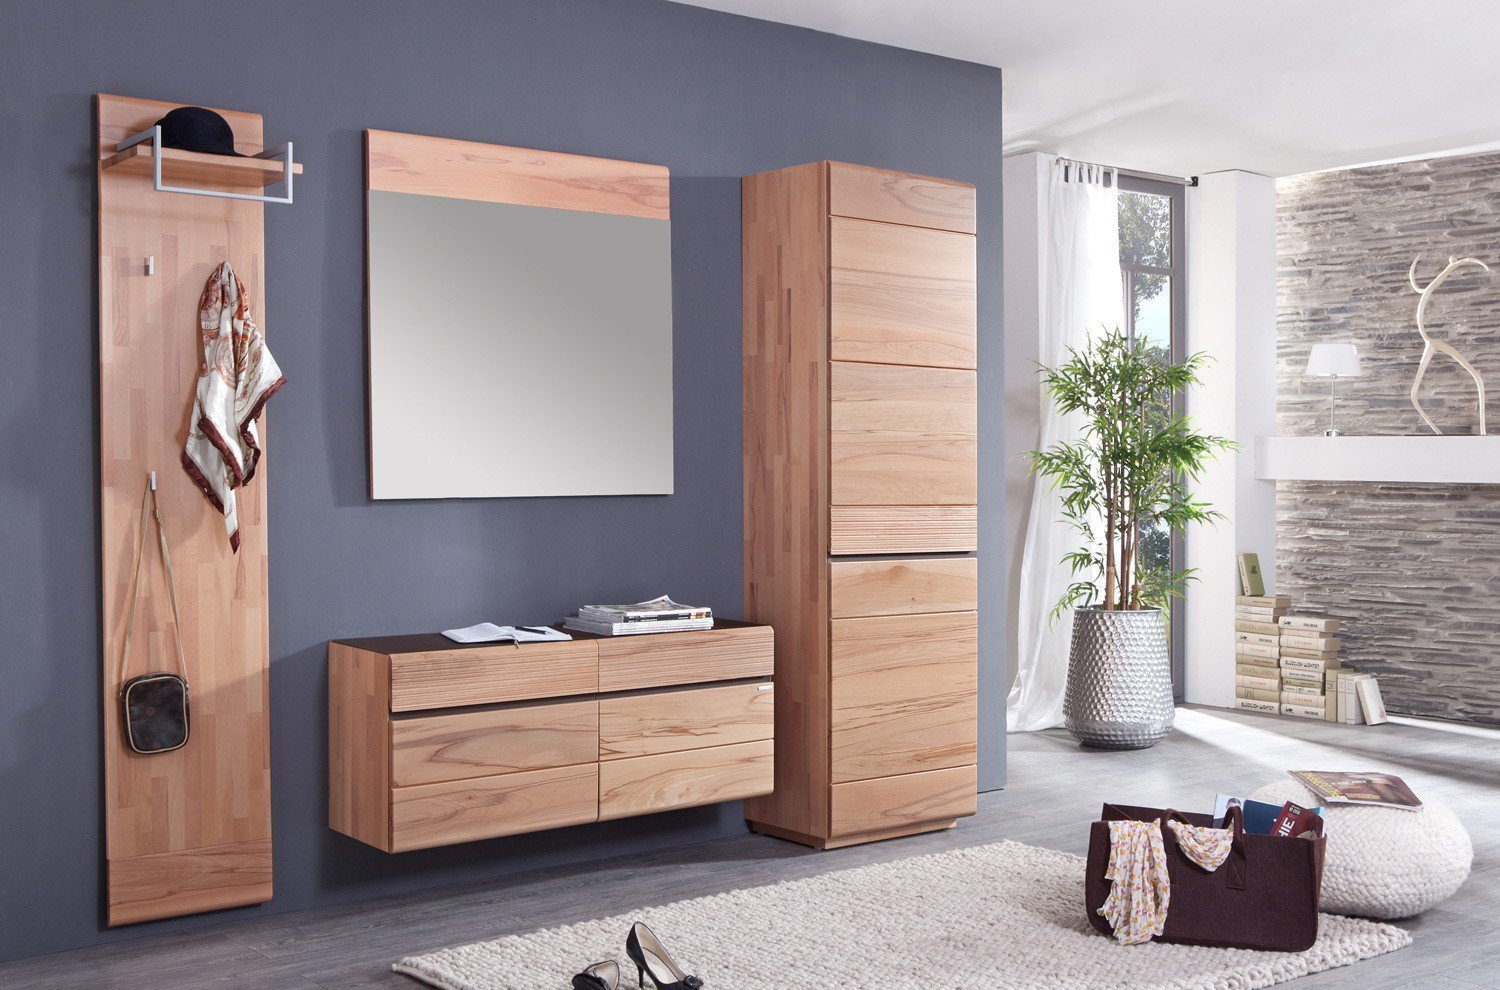 bienenm hle garderobe cosima kernbuche teil massiv m bel letz ihr online shop. Black Bedroom Furniture Sets. Home Design Ideas